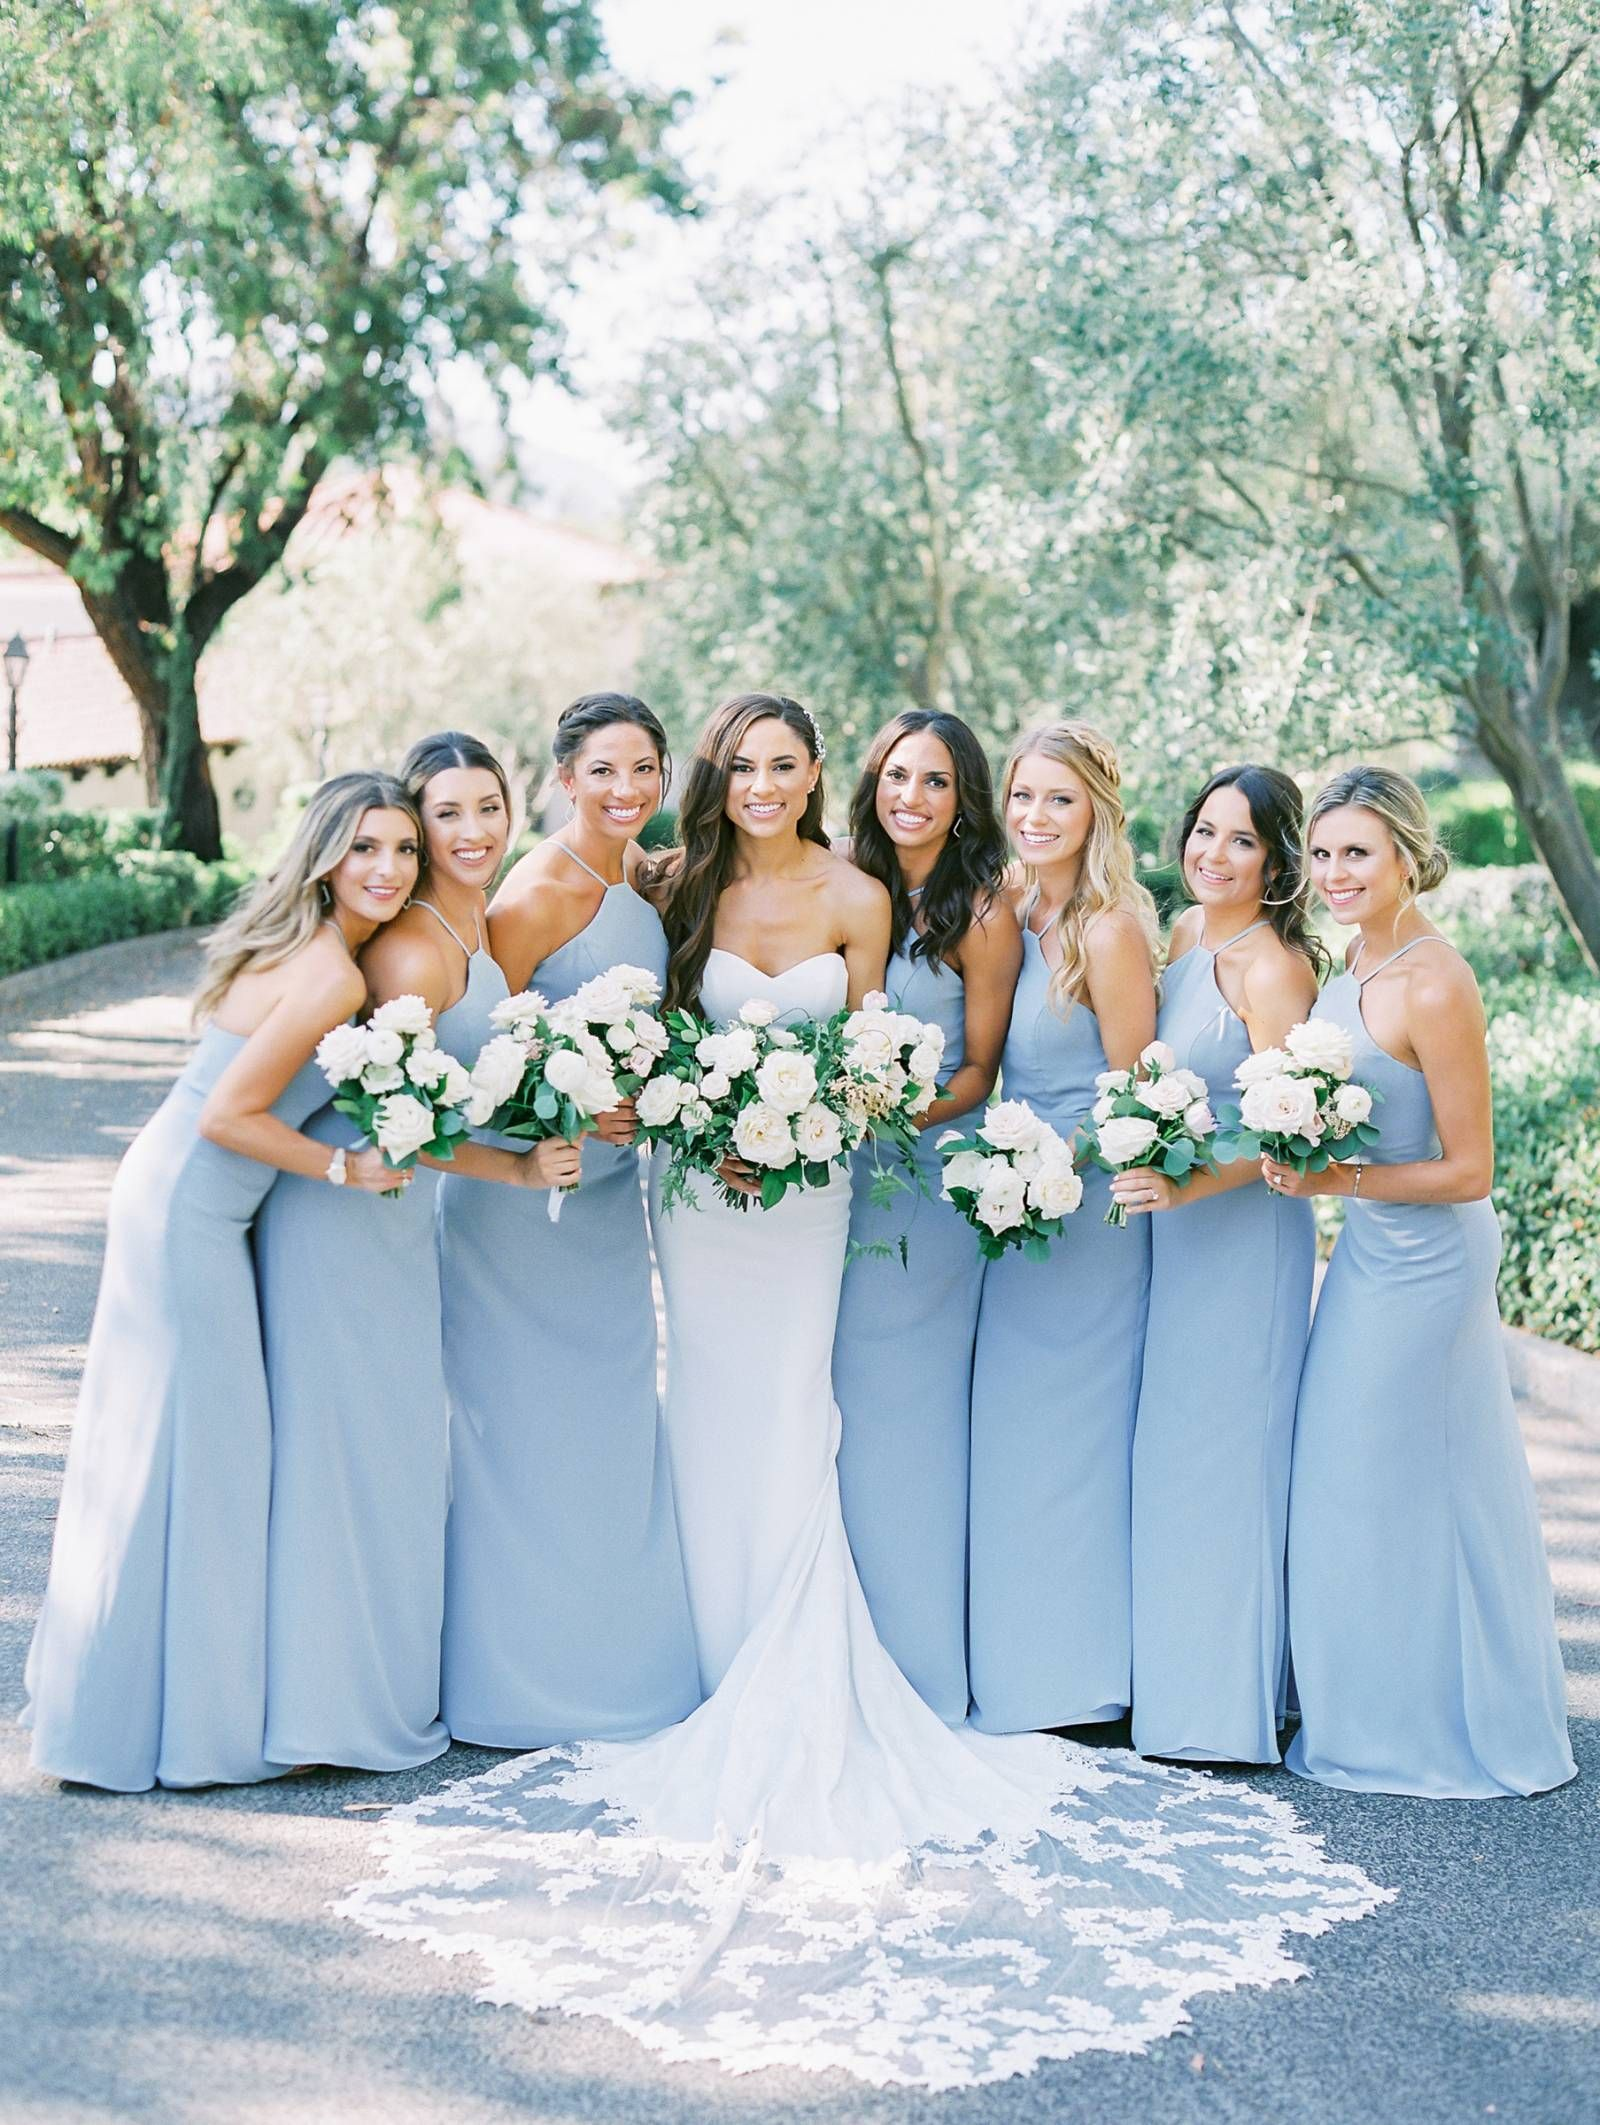 Hayley Paige Bridesmaids Dresses In A Gorgeous Shade Of Blue Elegant Romantic Outdoor Wed Wedding Bridesmaid Dresses Blue Bridesmaids Light Blue Bridesmaid [ 2125 x 1600 Pixel ]